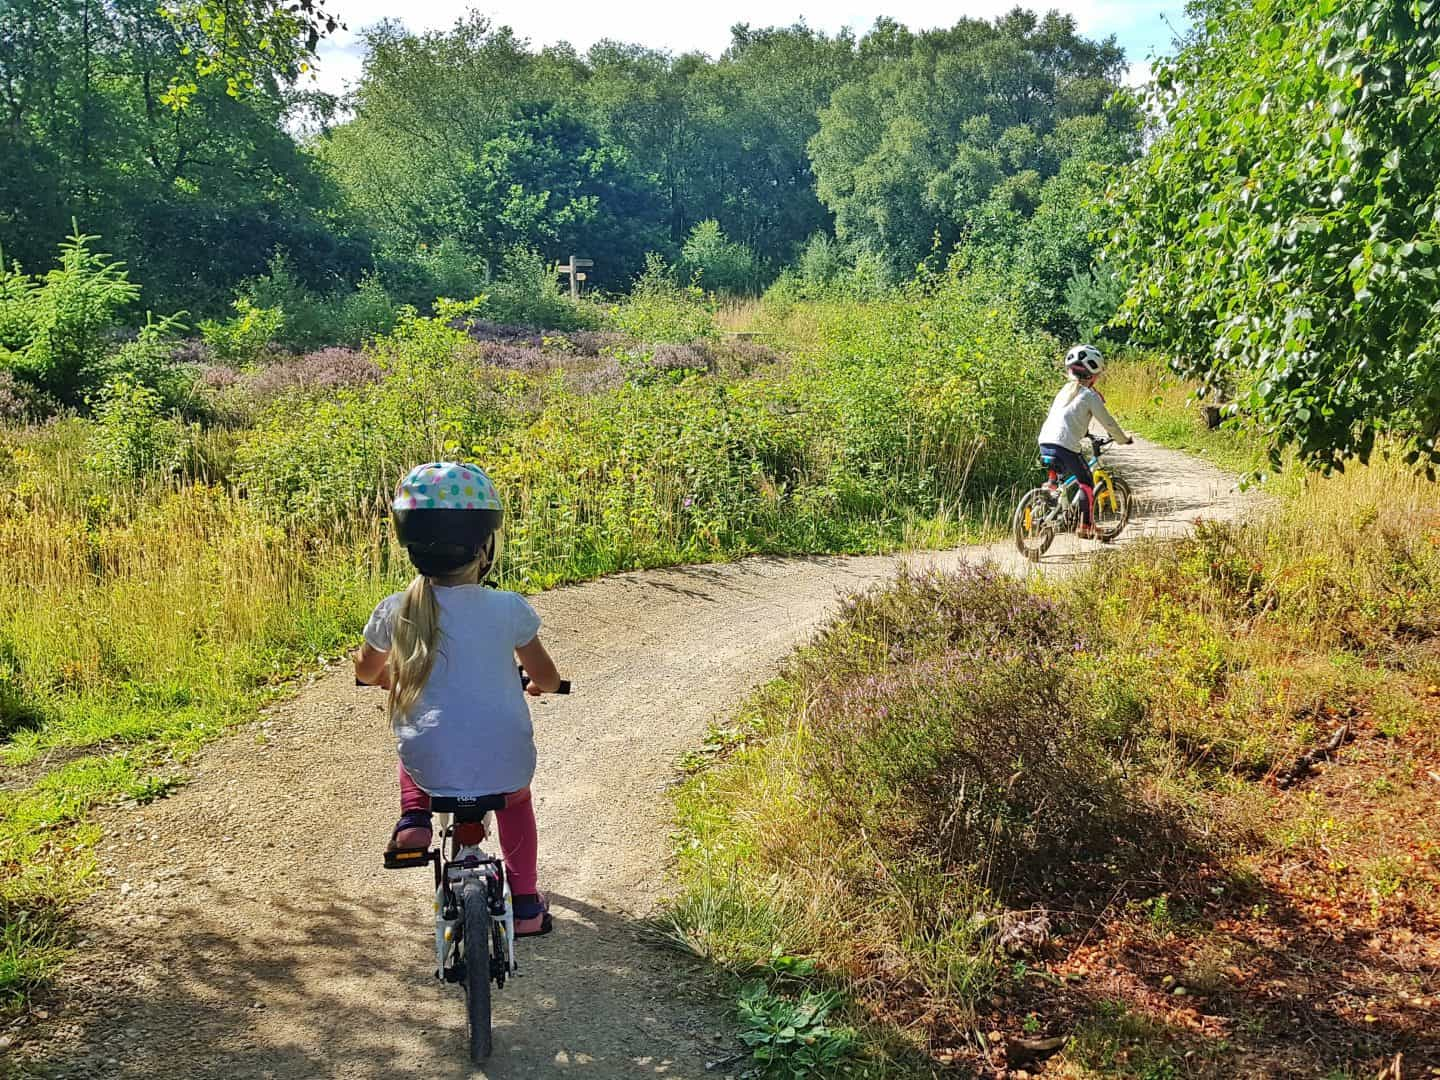 Two children on bicycles pedalling away from the camera on an off road trail